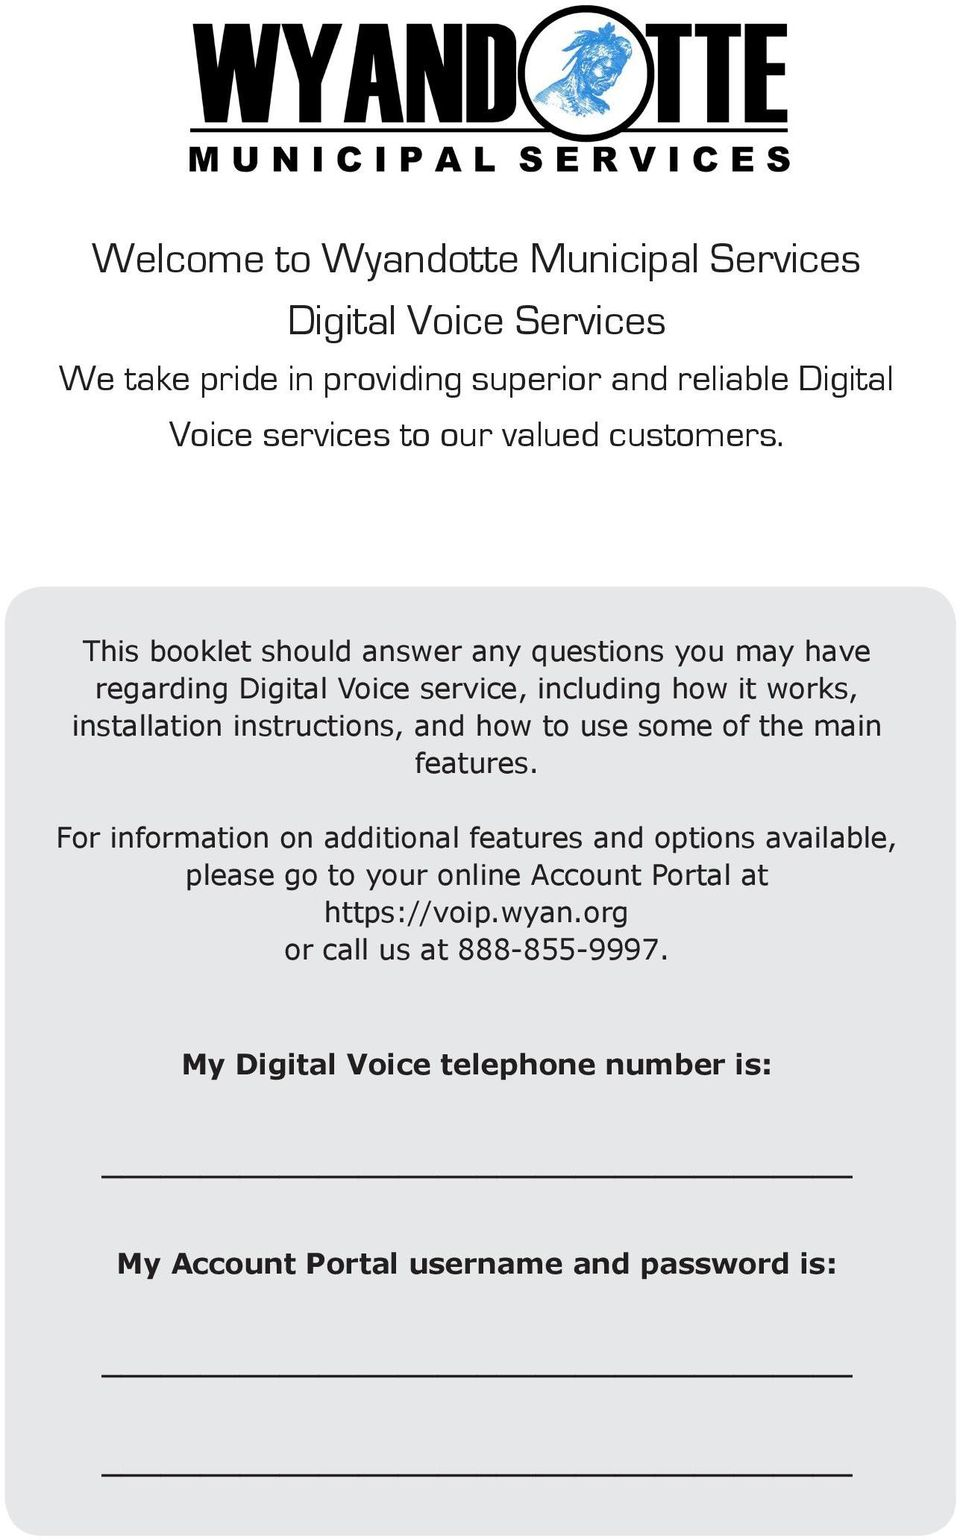 This booklet should answer any questions you may have regarding Digital Voice service, including how it works, installation instructions, and